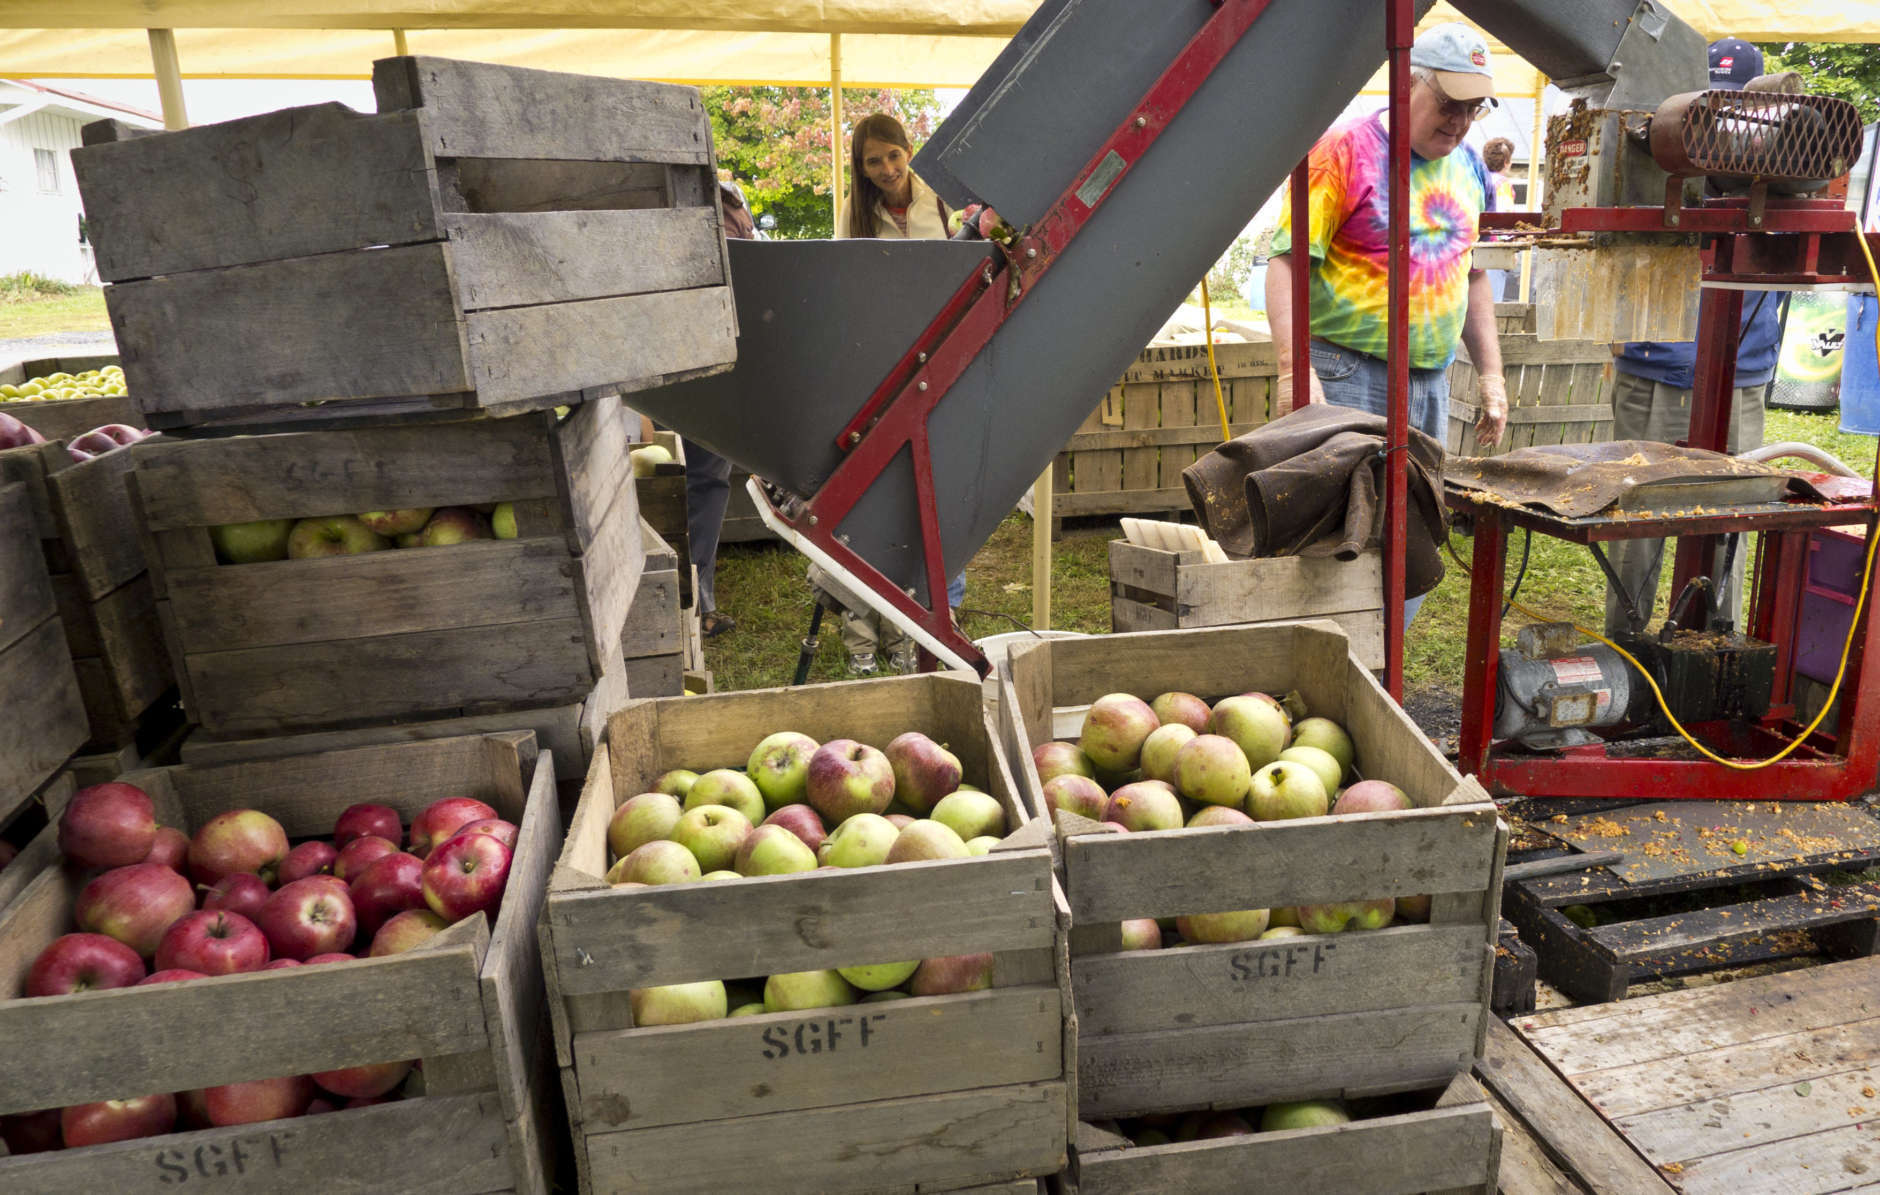 With the apple harvest at its peak in Virginia's Shenandoah Valley, red delicious and jonagolds are pressed for cider by Lynn West, right, at Hartland Orchard near Markham , Va., Saturday, Sept. 17, 2011. (AP Photo/J. Scott Applewhite)